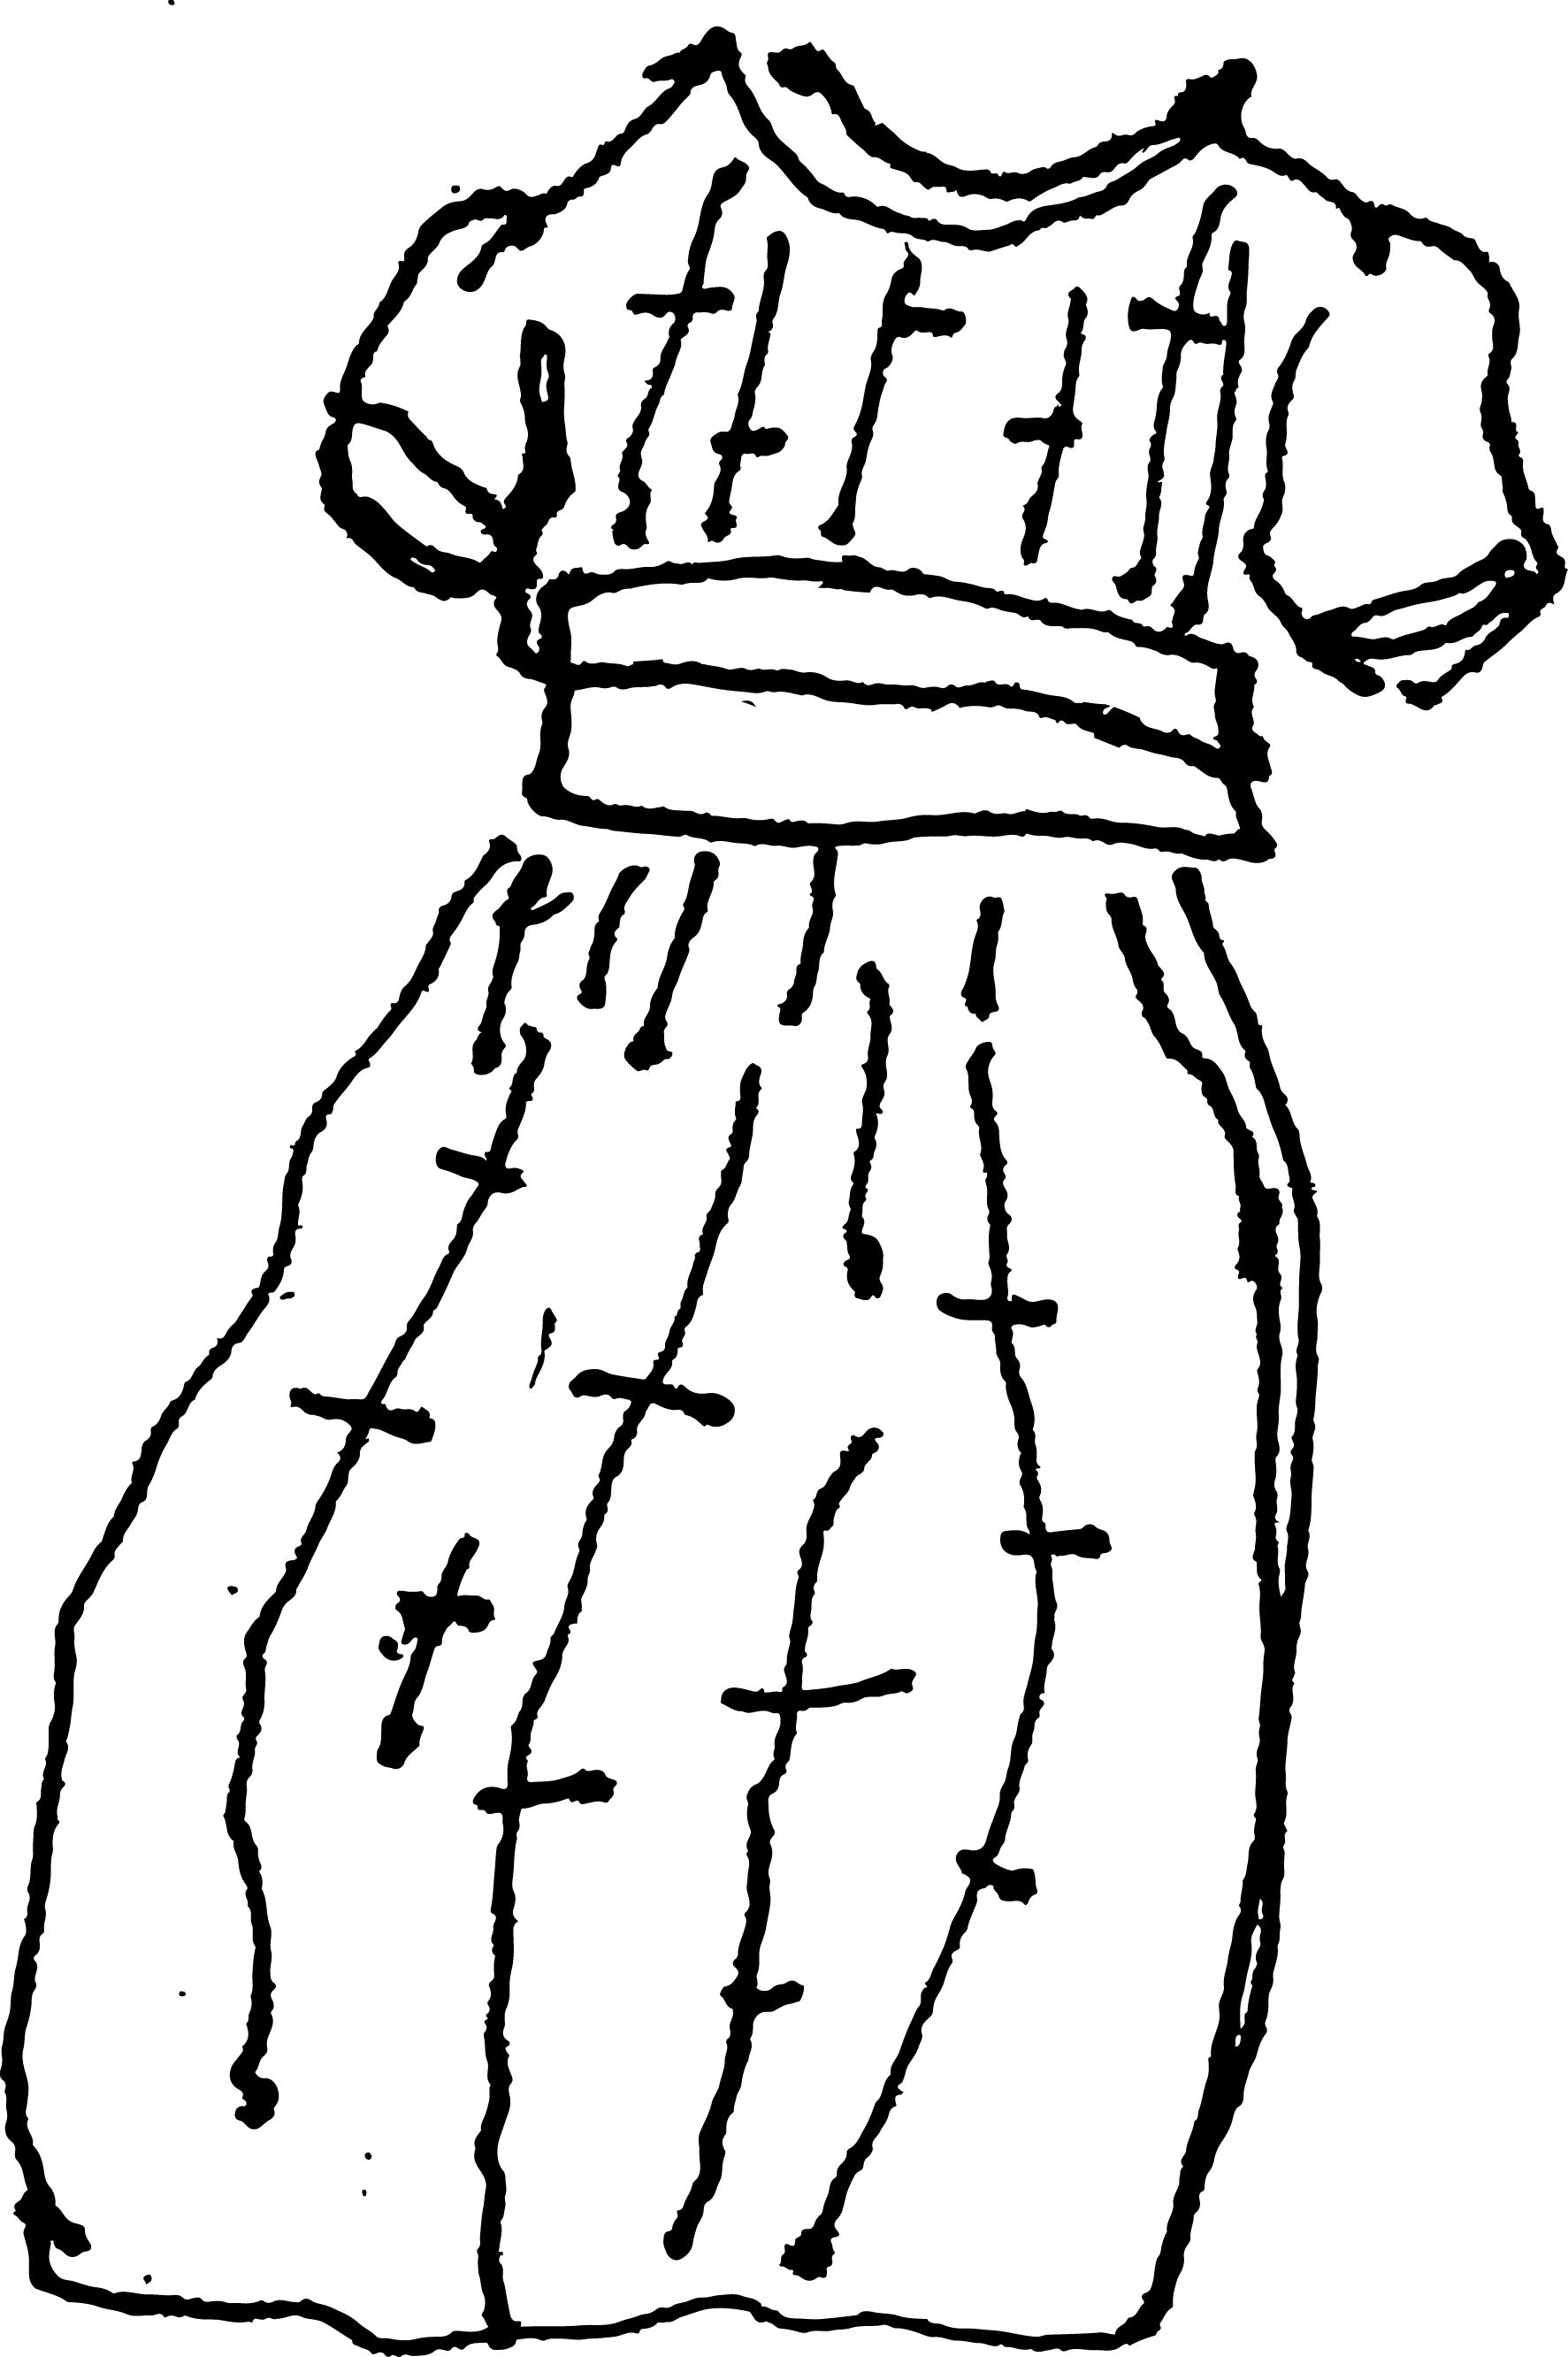 Communion Dress - White Background.png